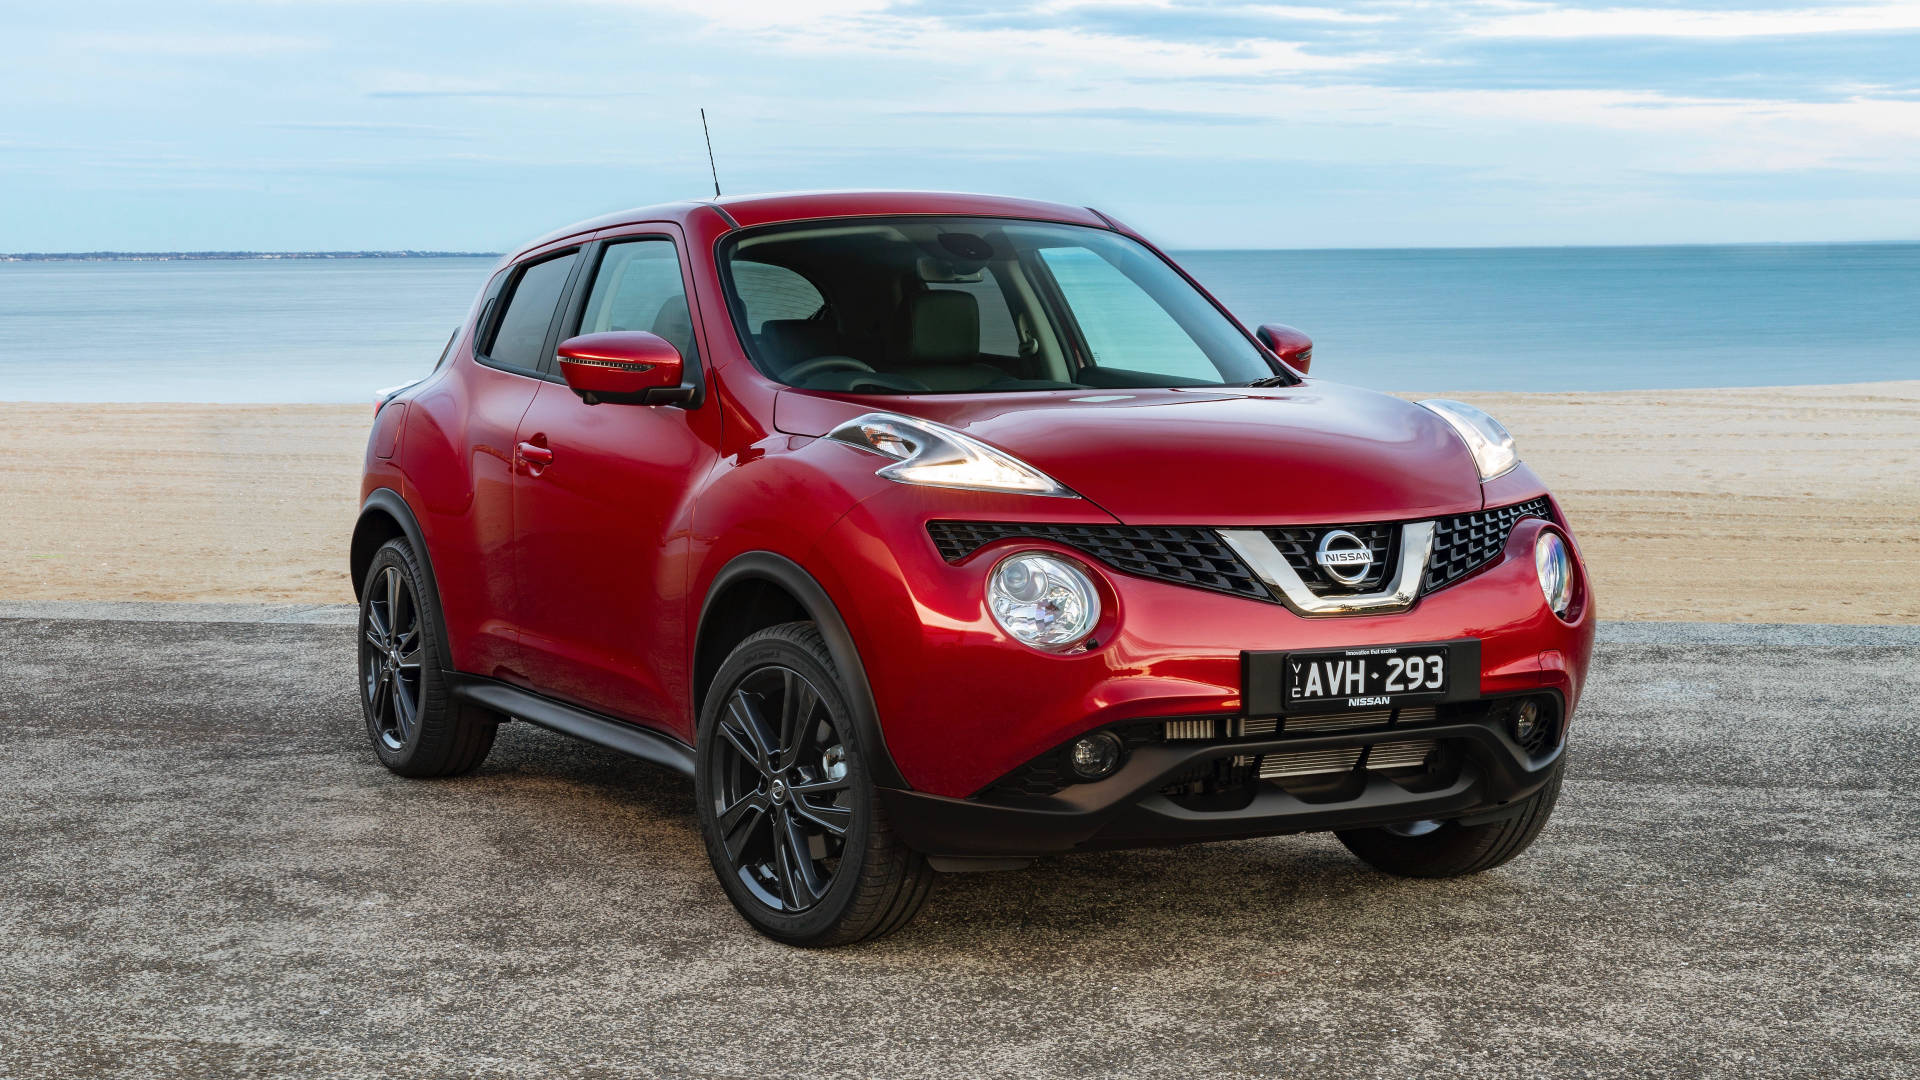 2019 Nissan Juke Ti-S red front 3/4